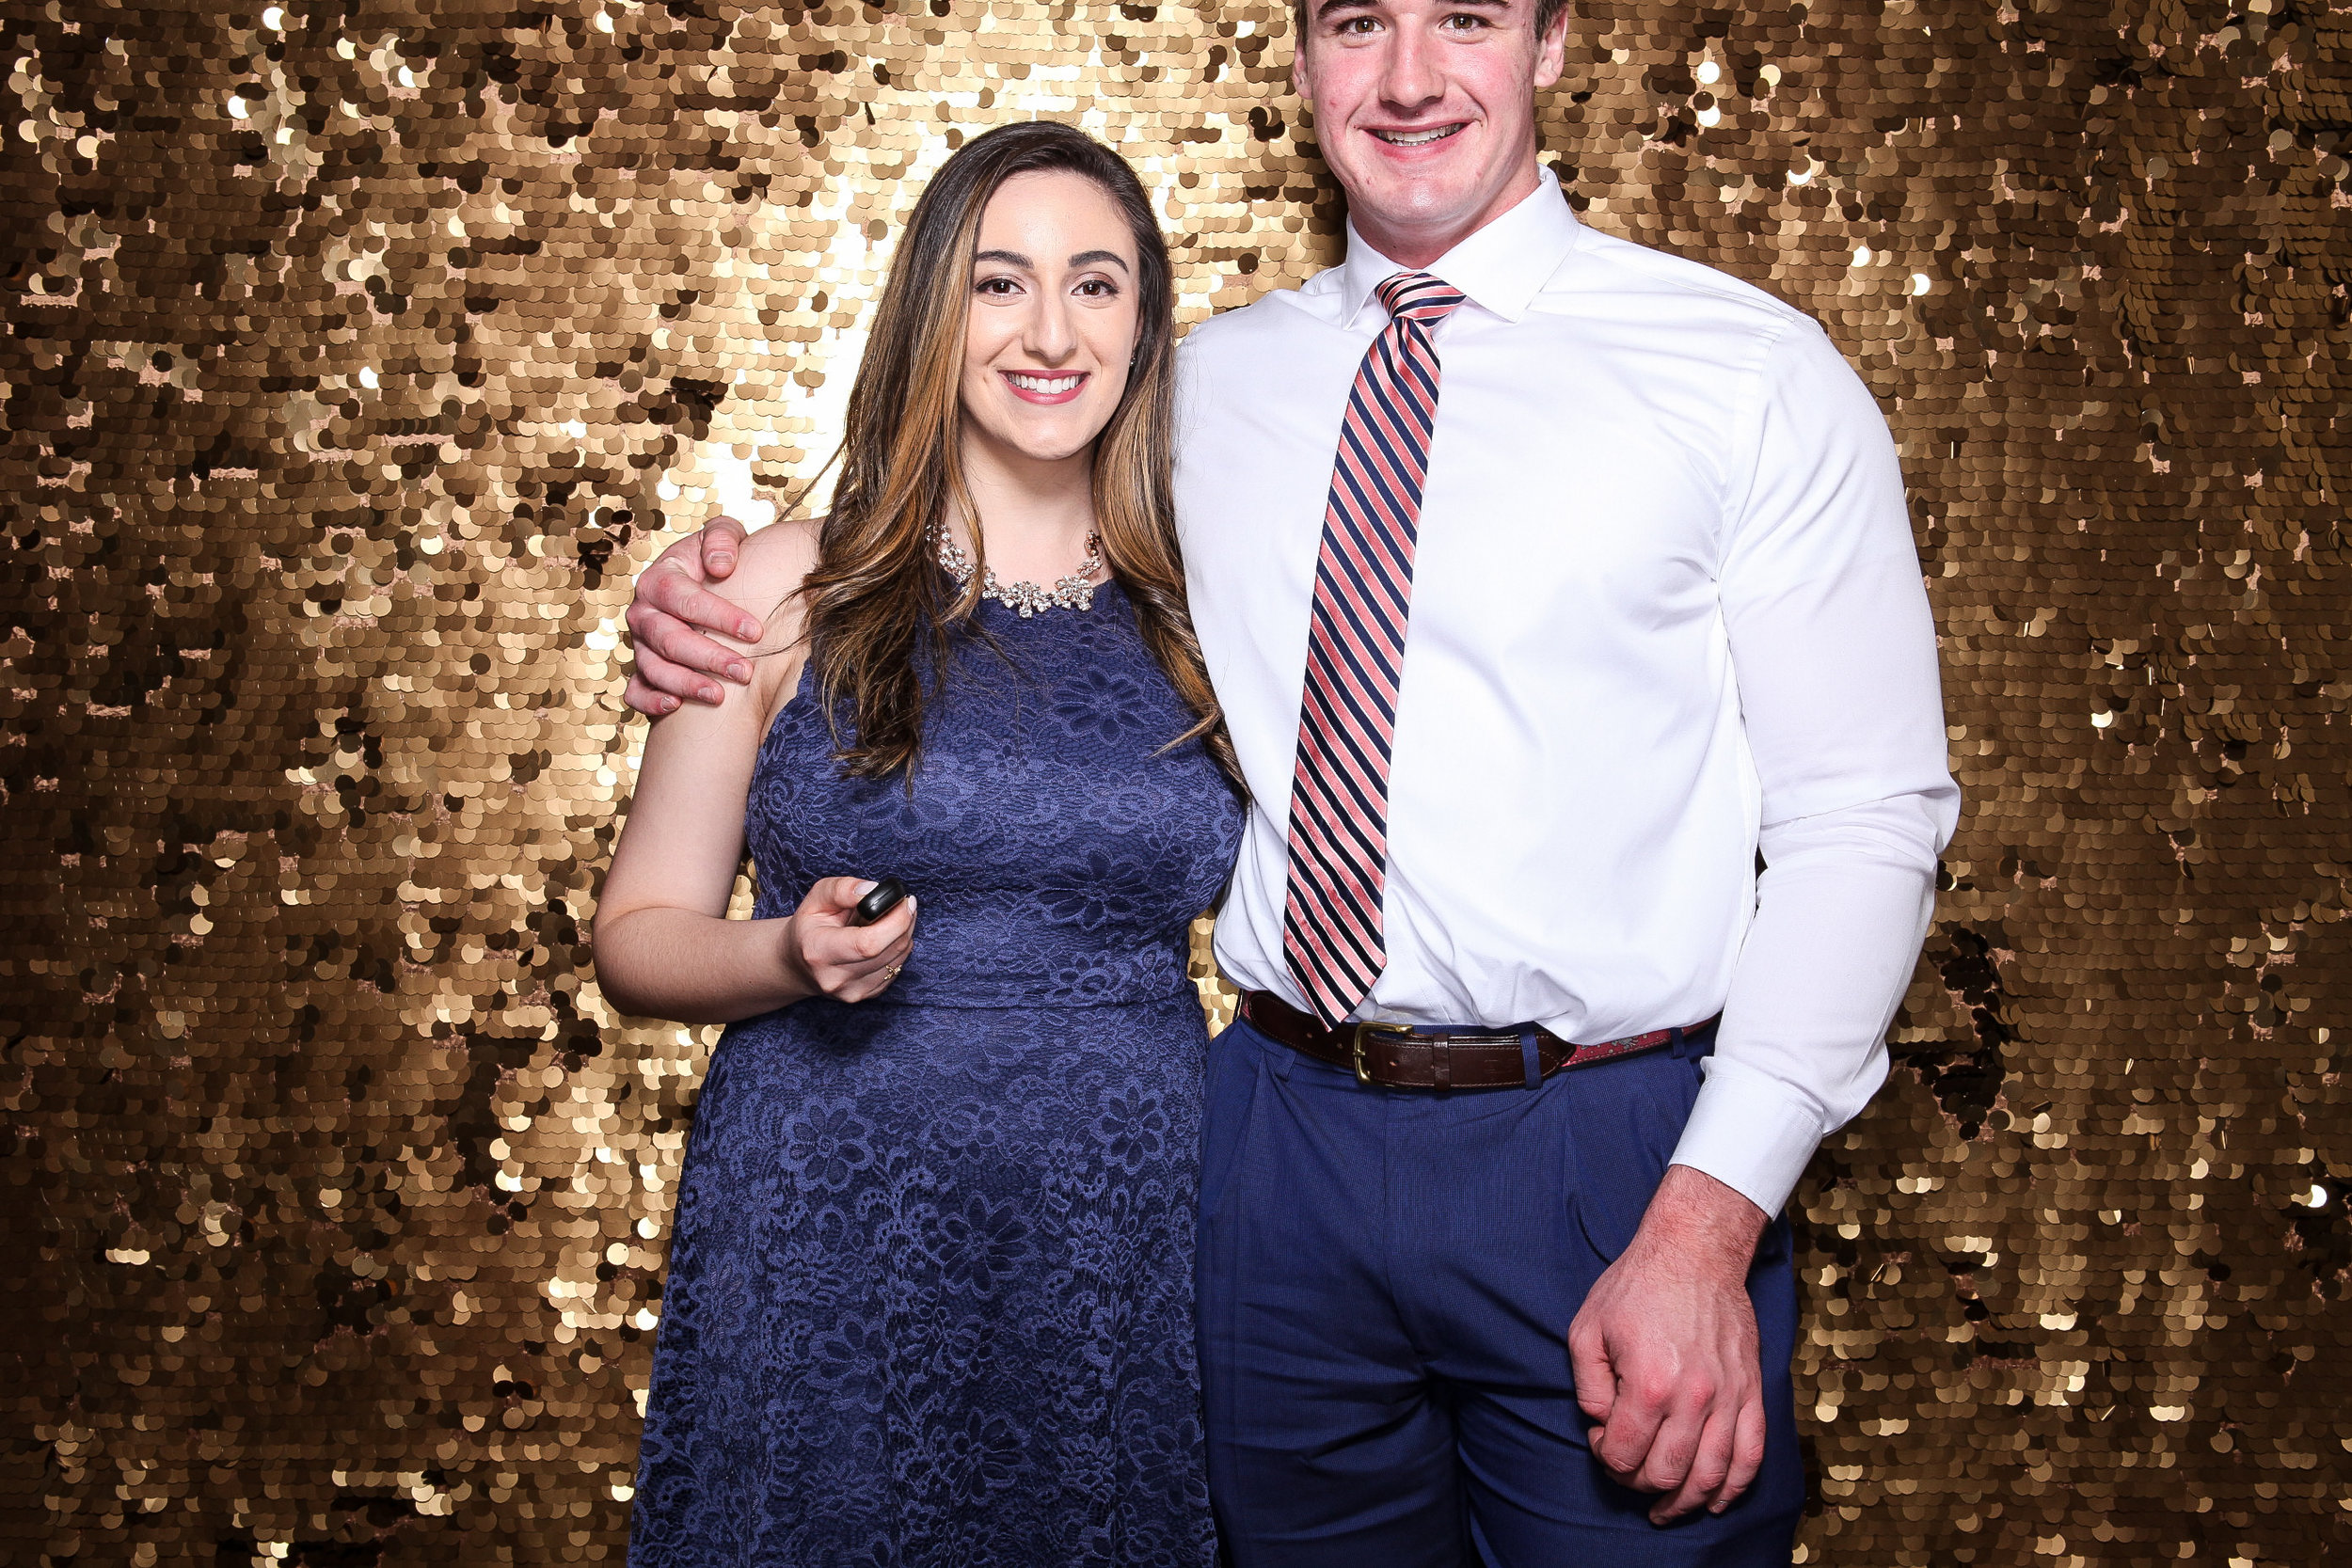 20190503_Adelphi_Senior_Formal-311.jpg